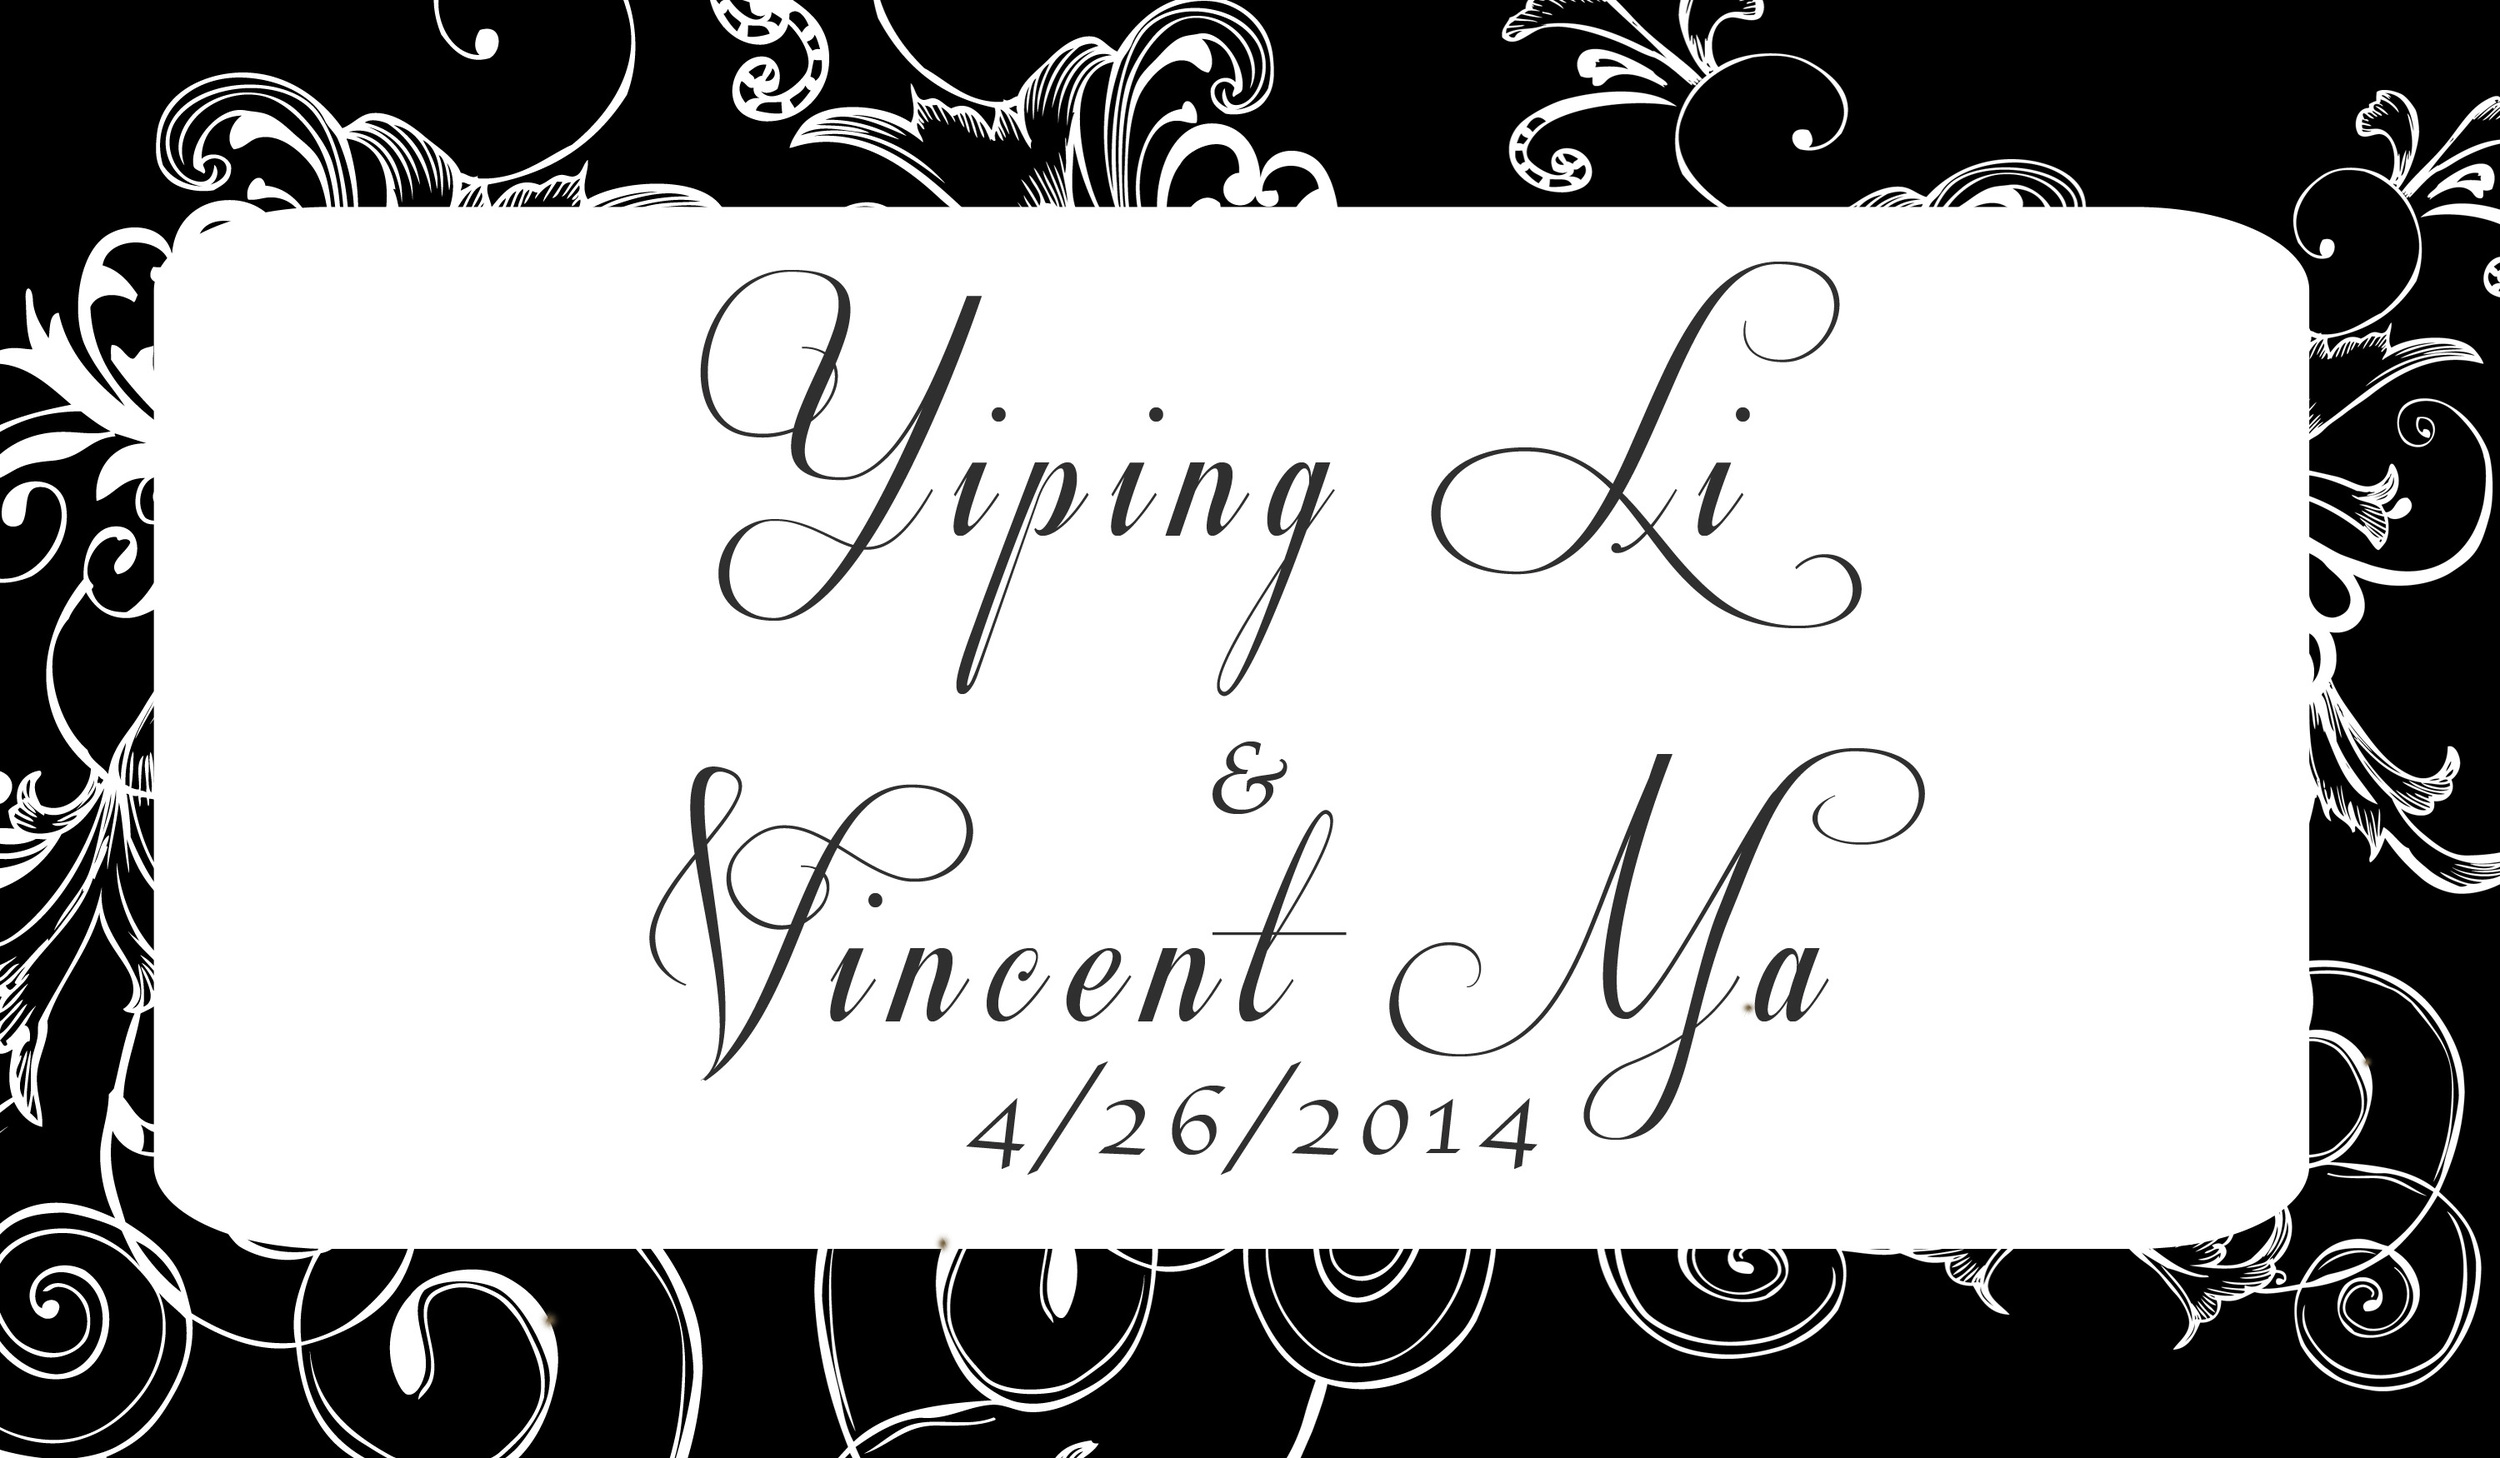 Yiping & Vincent BW.jpg